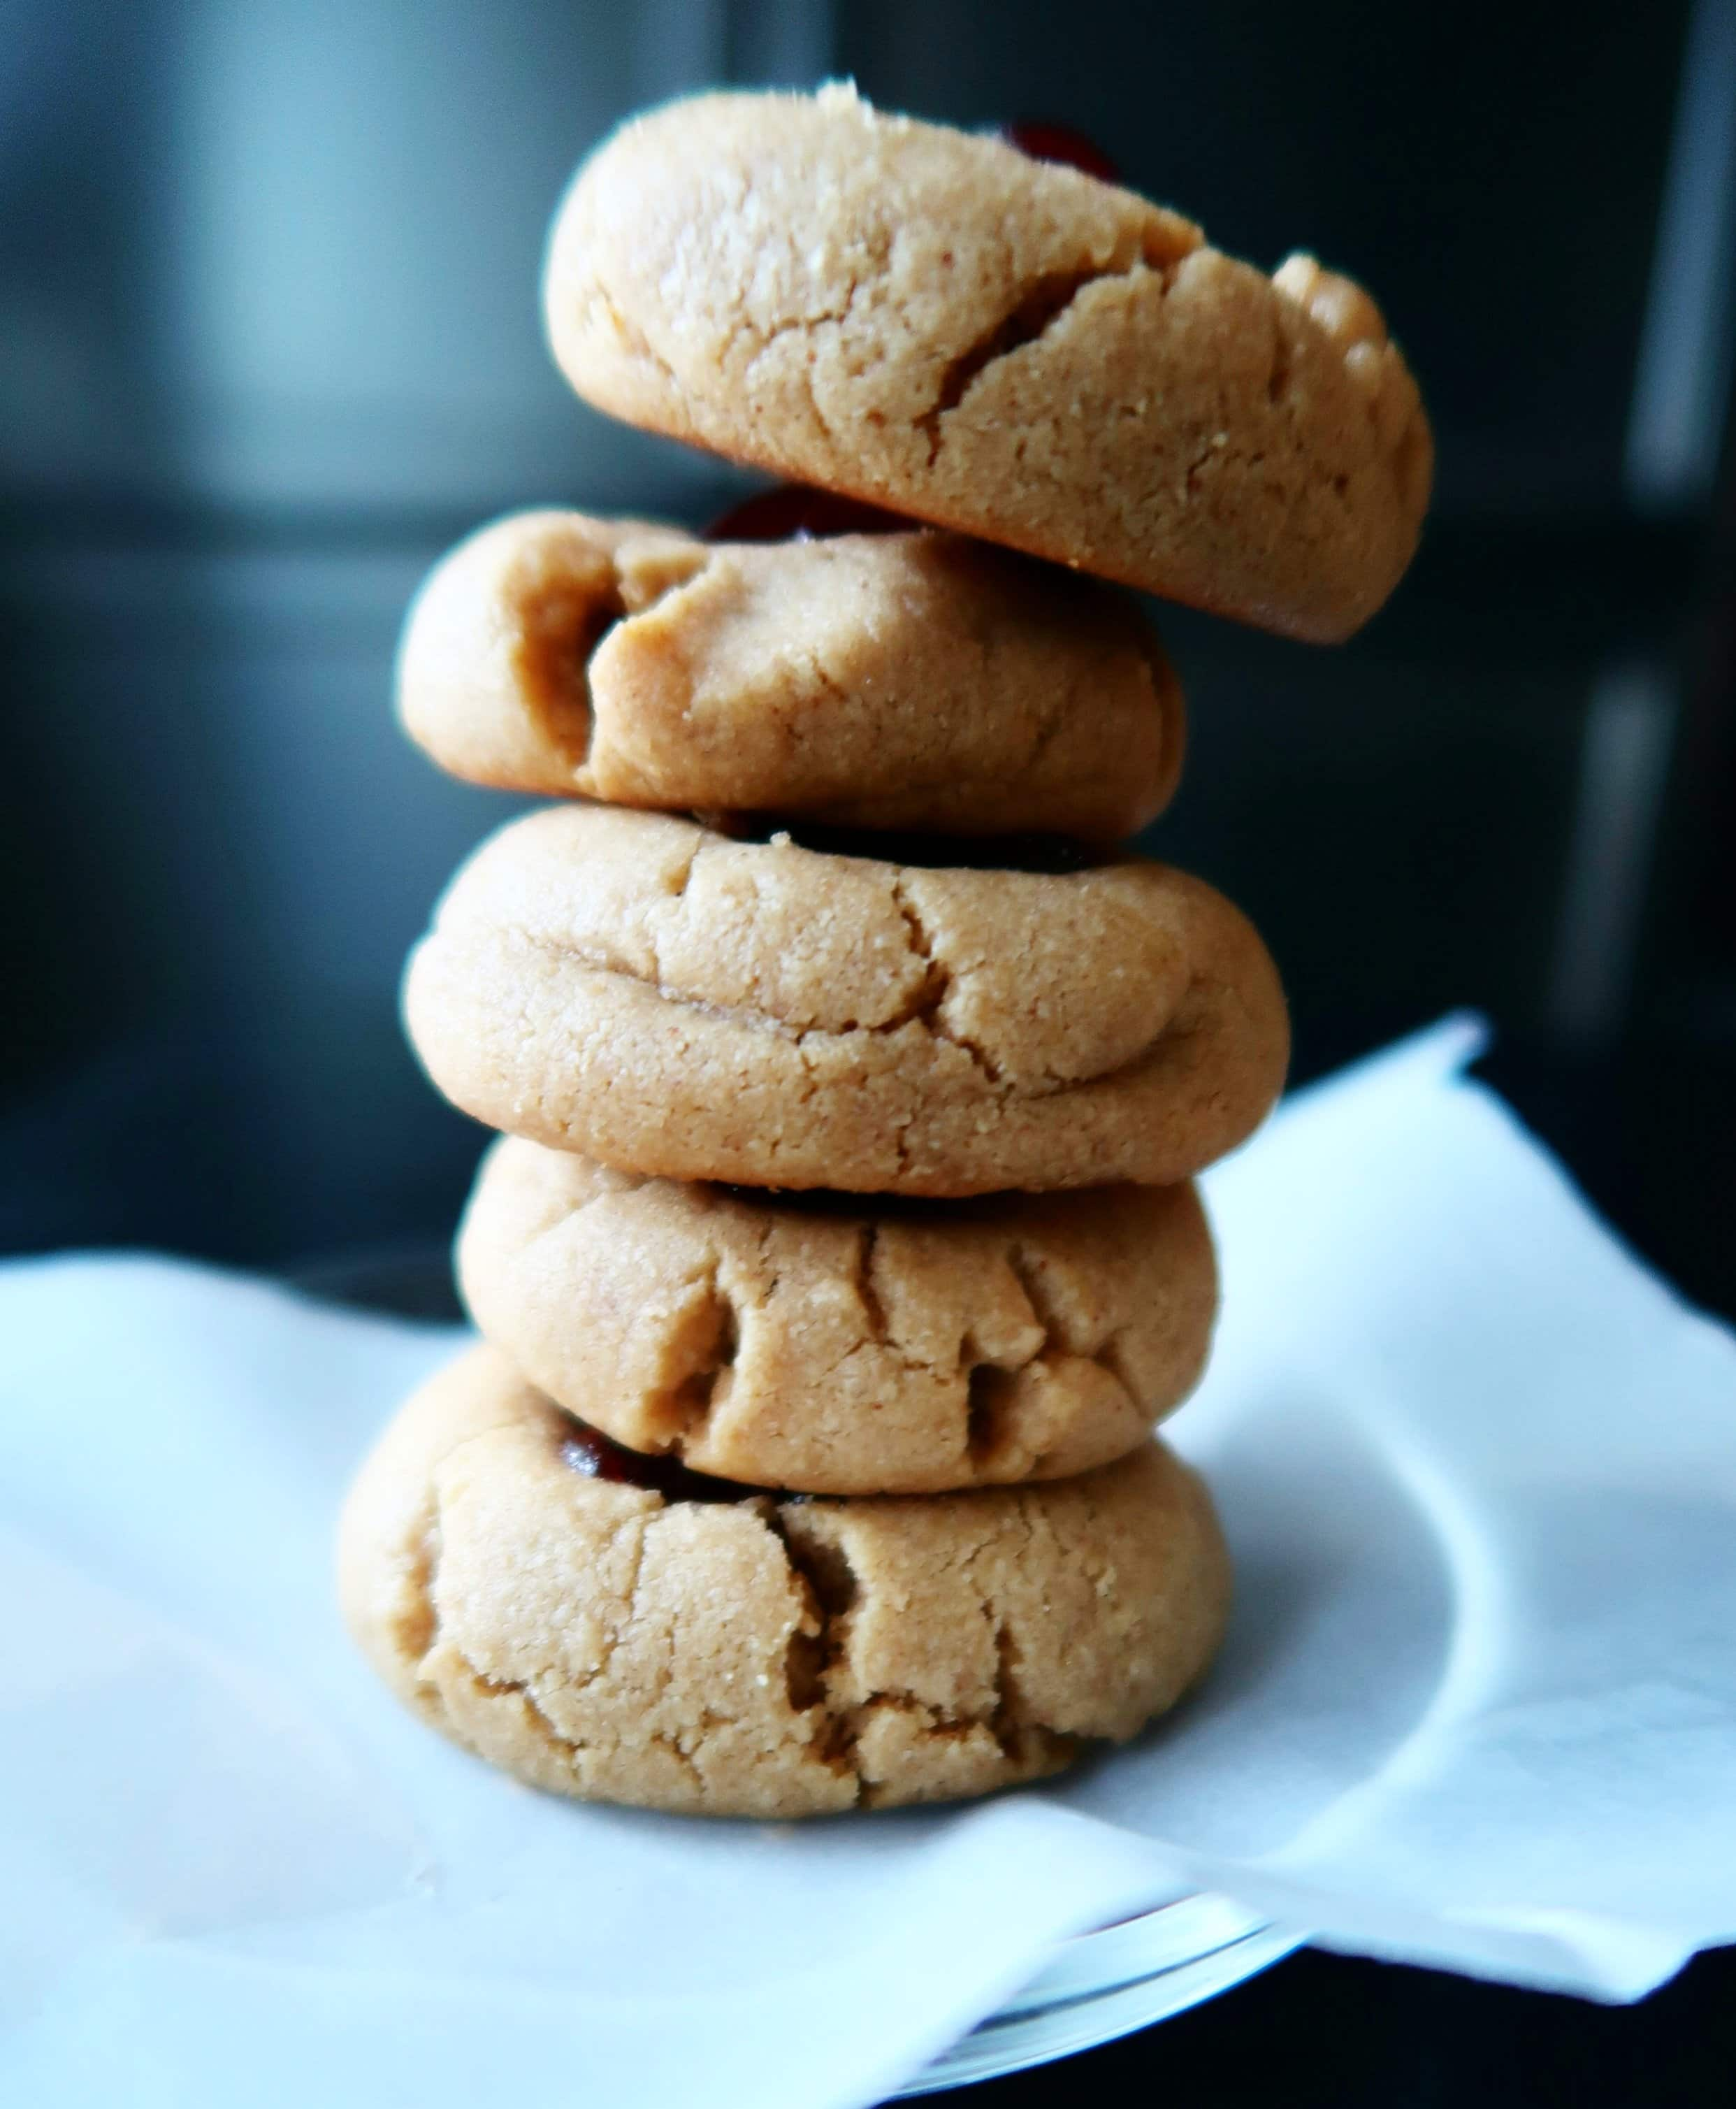 A tower of peanut butter cookies.